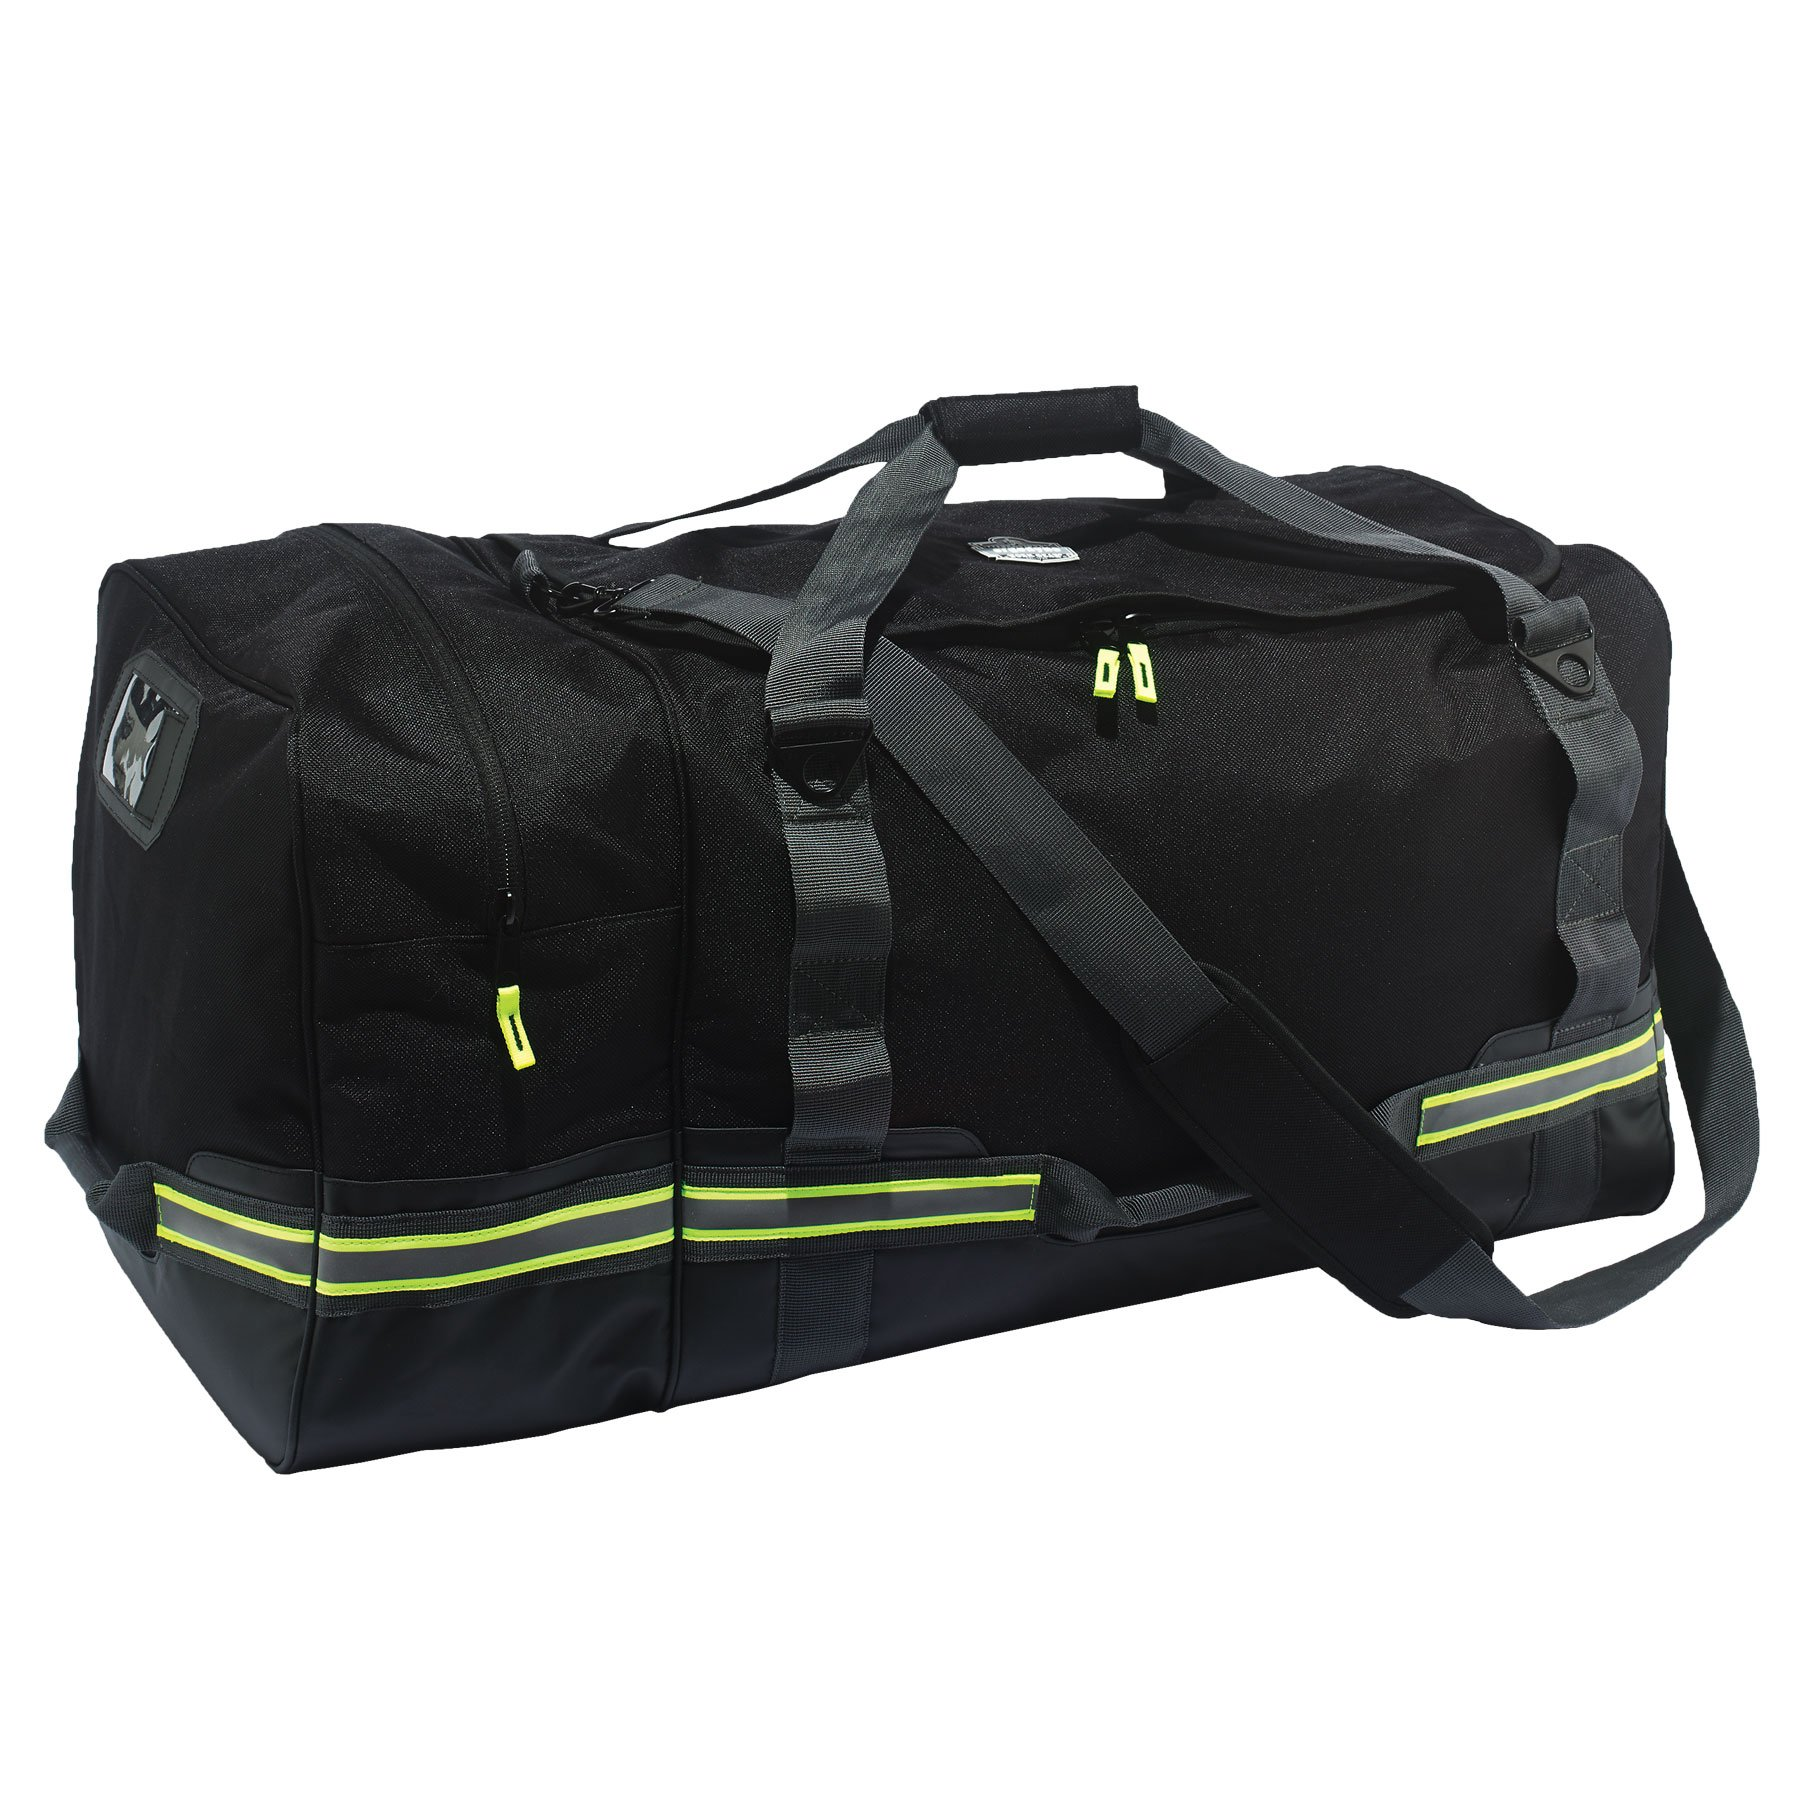 Arsenal 5008 Firefighter Turnout Gear and Safety Duffel Bag for Fire, Fall Protection and Sport Gear Bag Use, Black